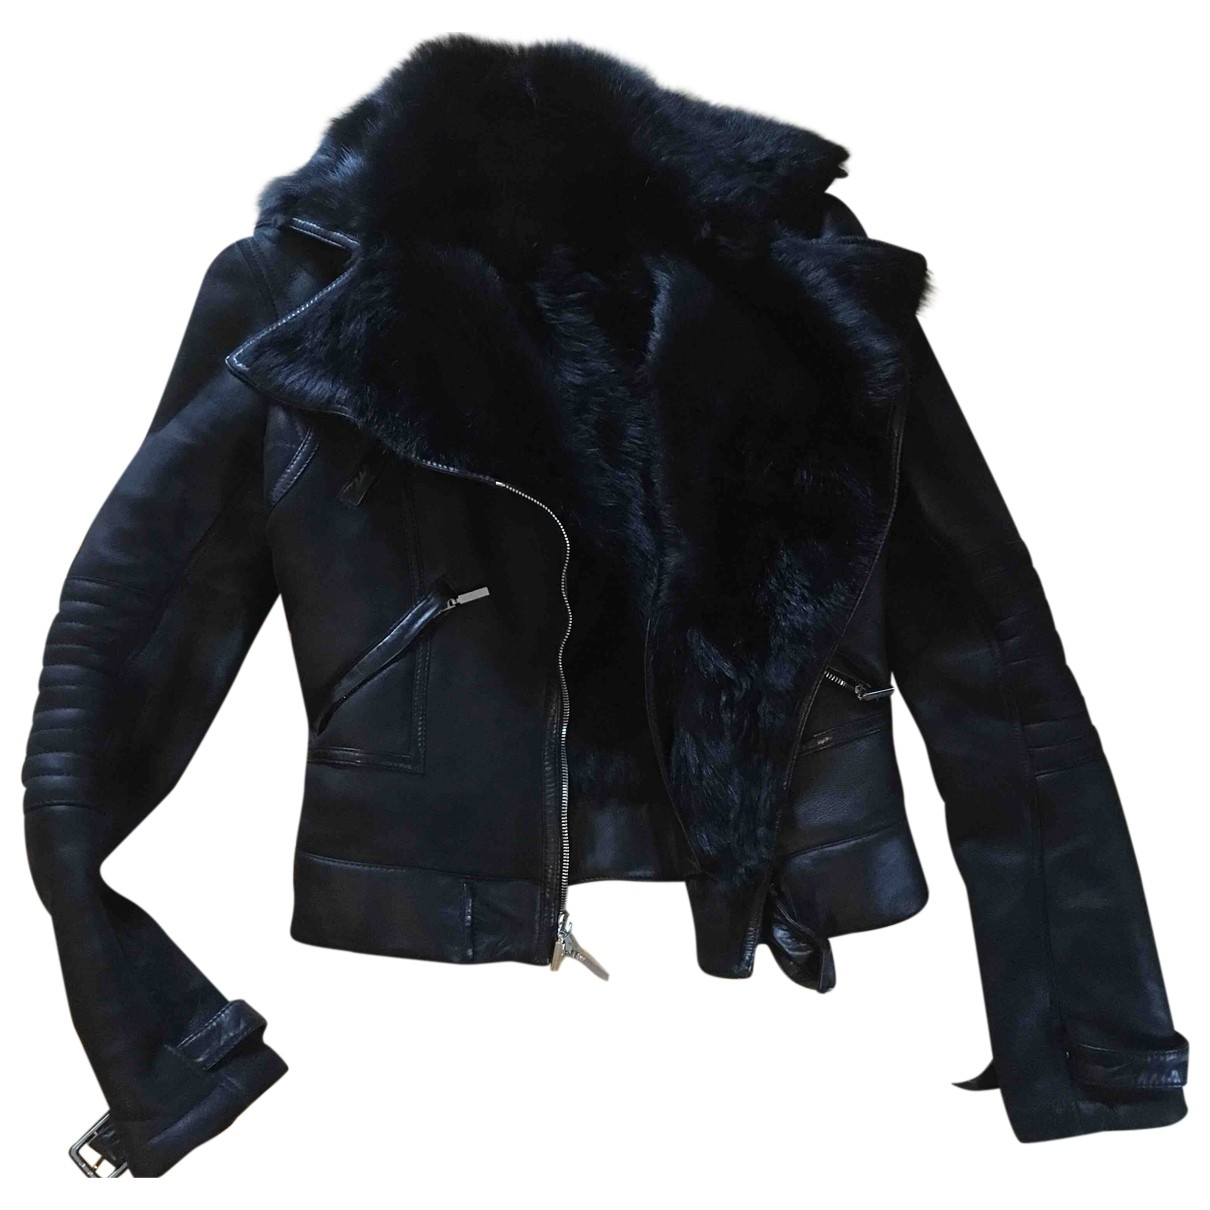 Gianni Versace \N Black Leather Leather jacket for Women 40 IT